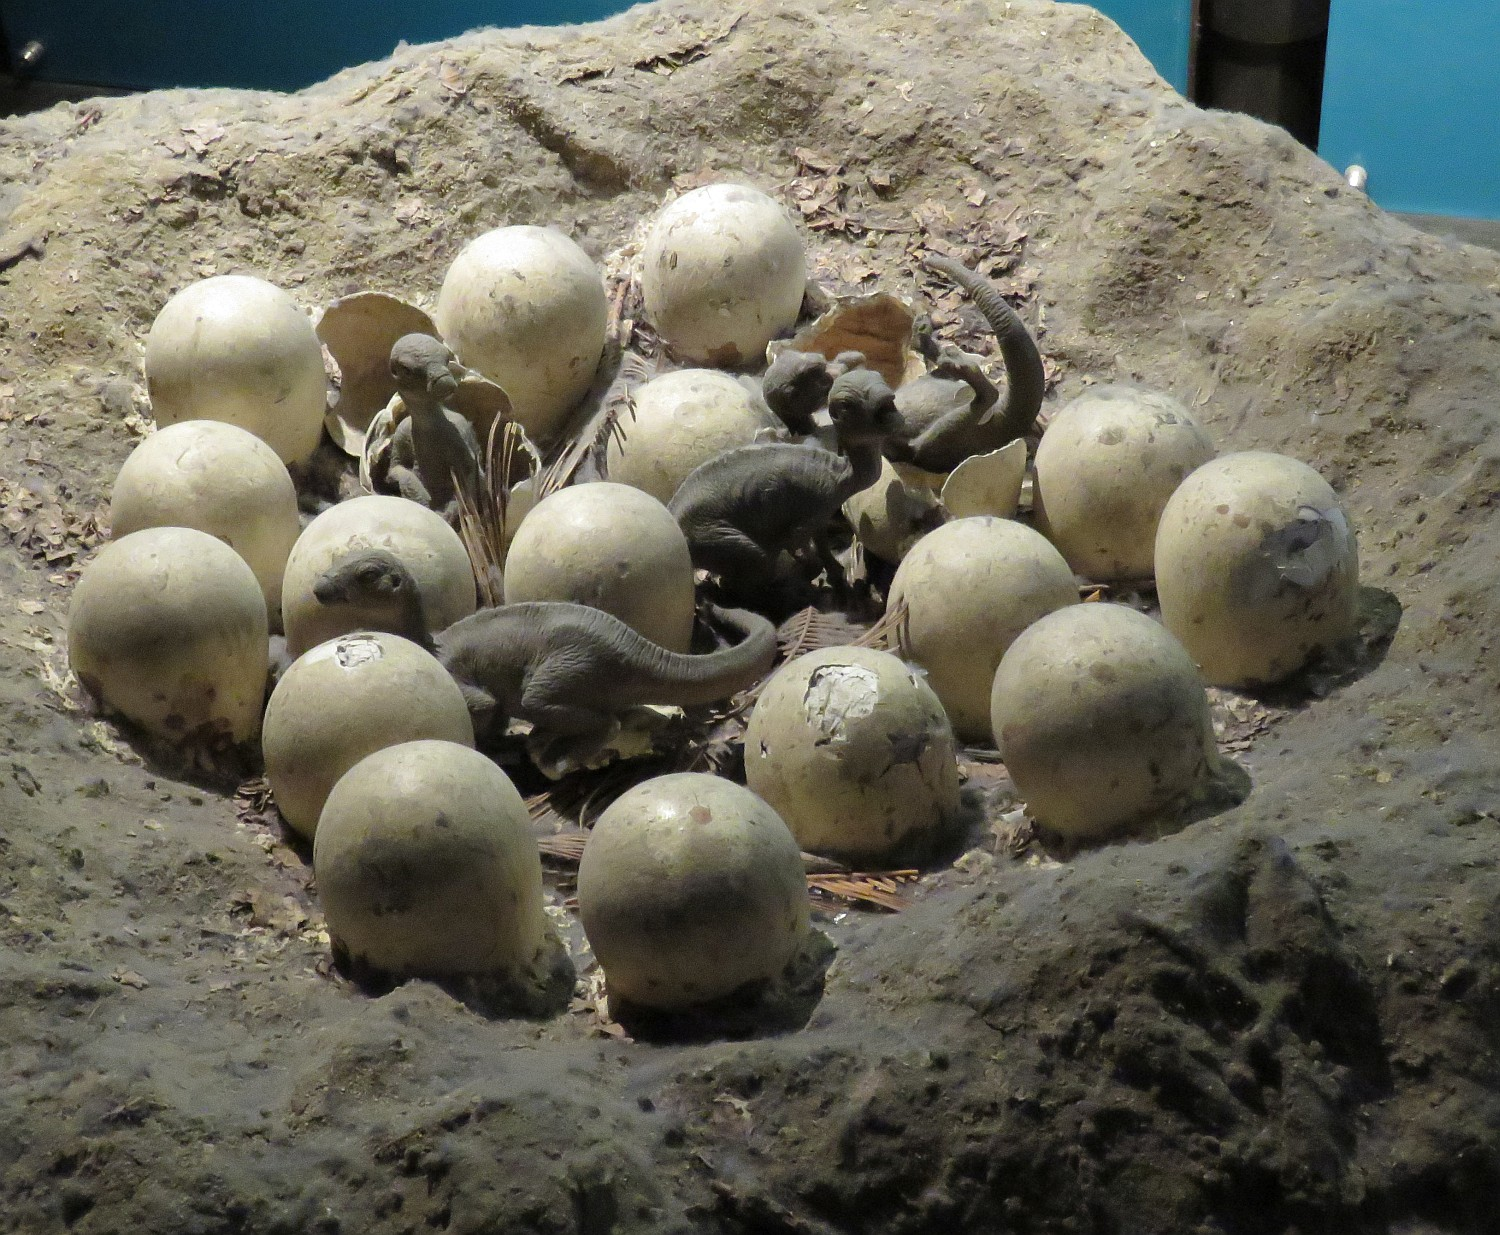 Ornithischian eggs hatching